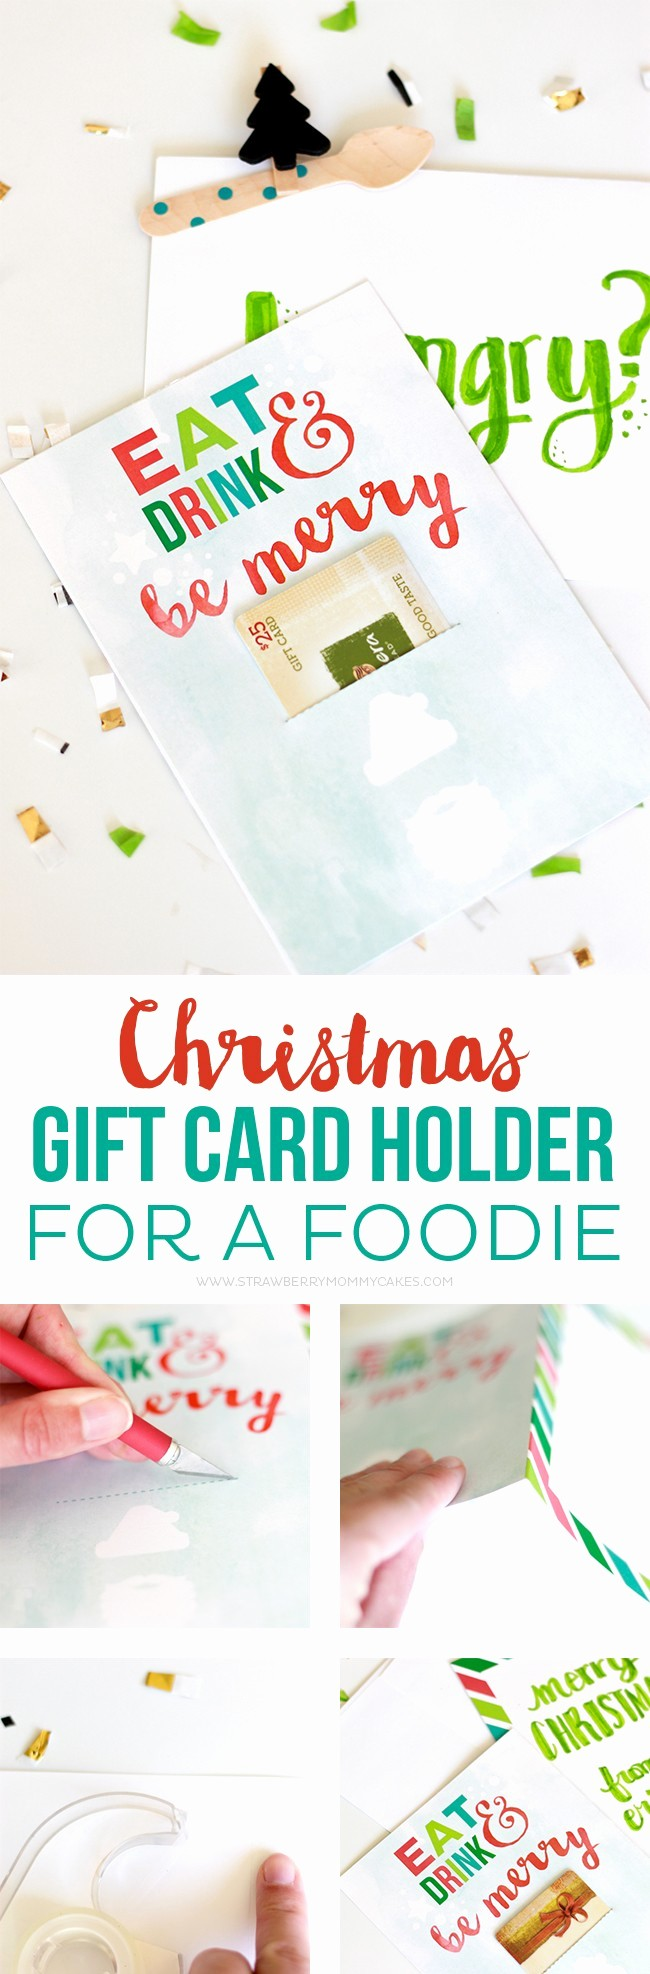 Create A Gift Card Free Best Of How to Make A Christmas Gift Card Holder for A Foo